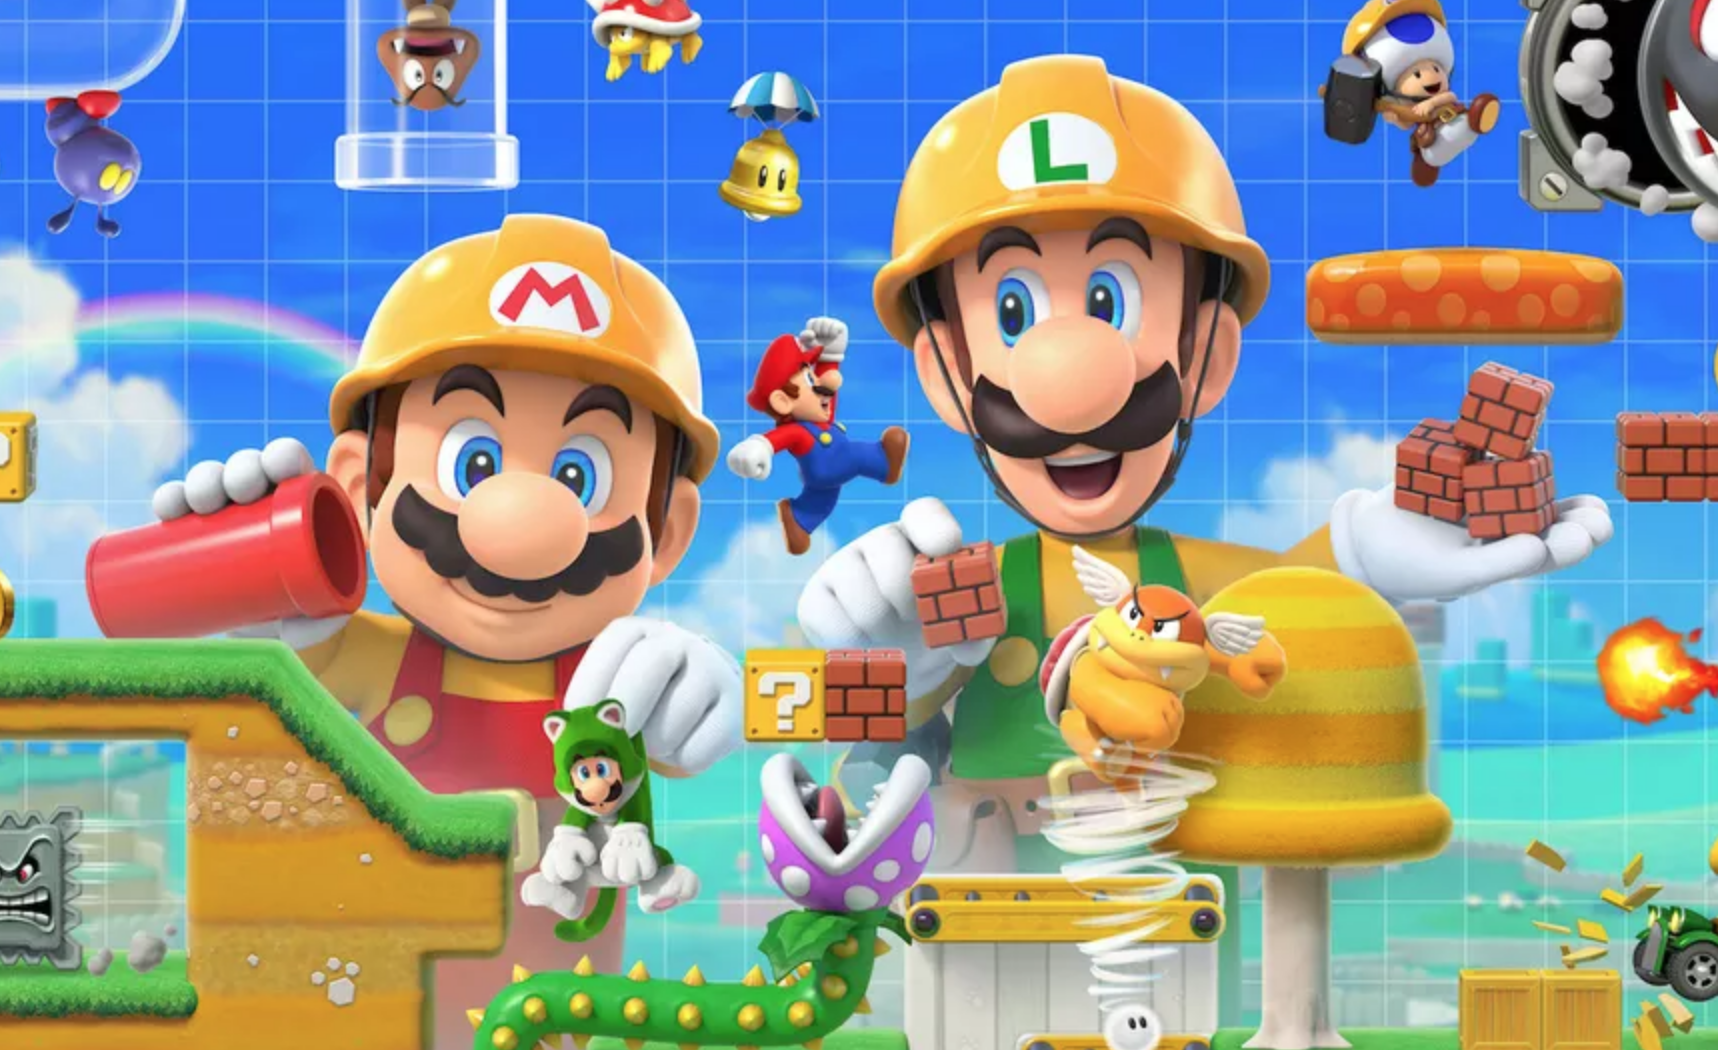 Playing As Luigi In Super Mario Maker 2 Probably Won't Help You Complete Levels Faster